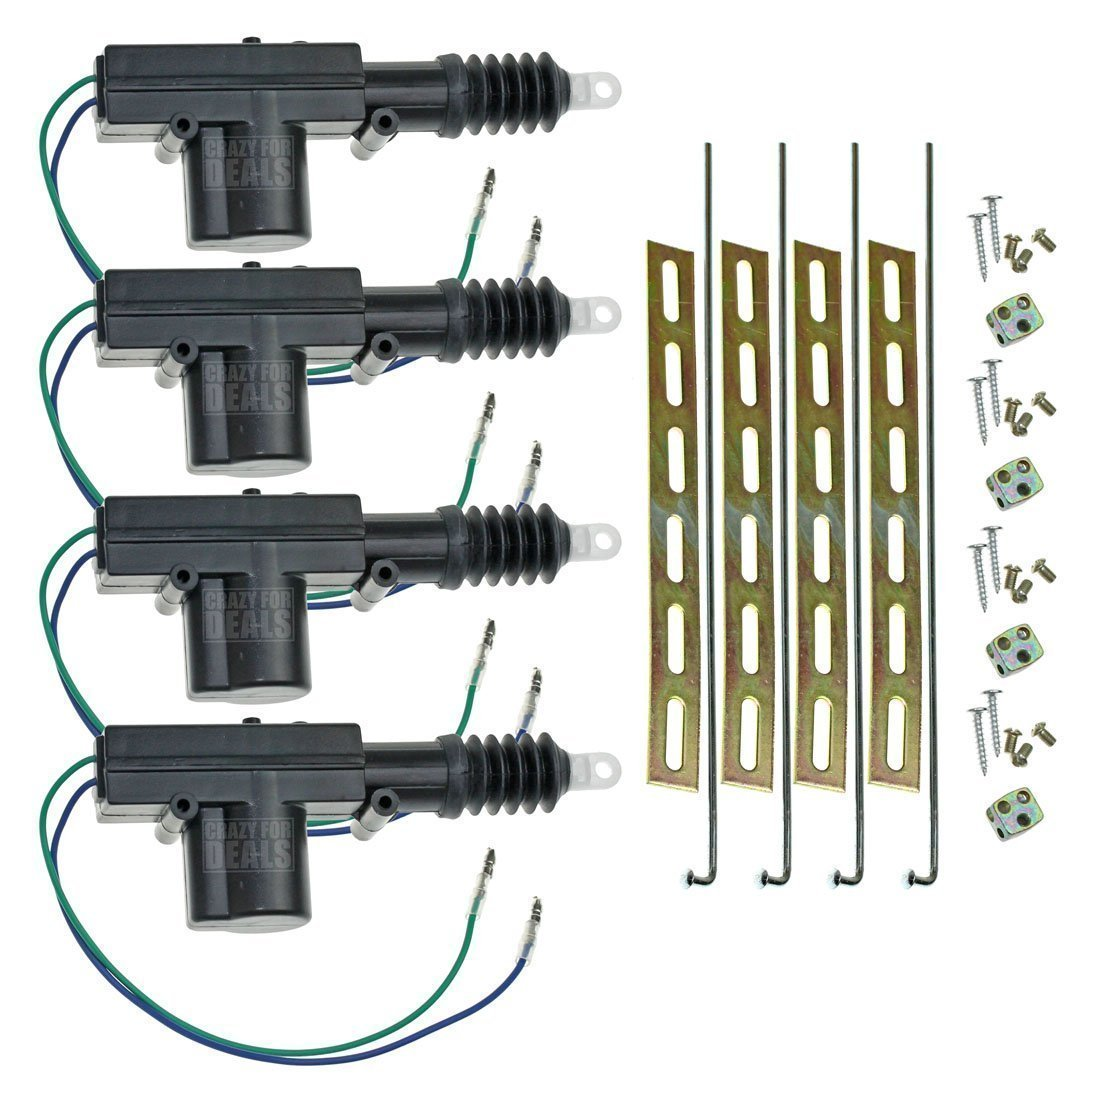 Cheap Power Door Lock Wiring Find Deals On Universal Actuator Diagram Get Quotations Installgear Car 12 Volt Motor 4 Pack